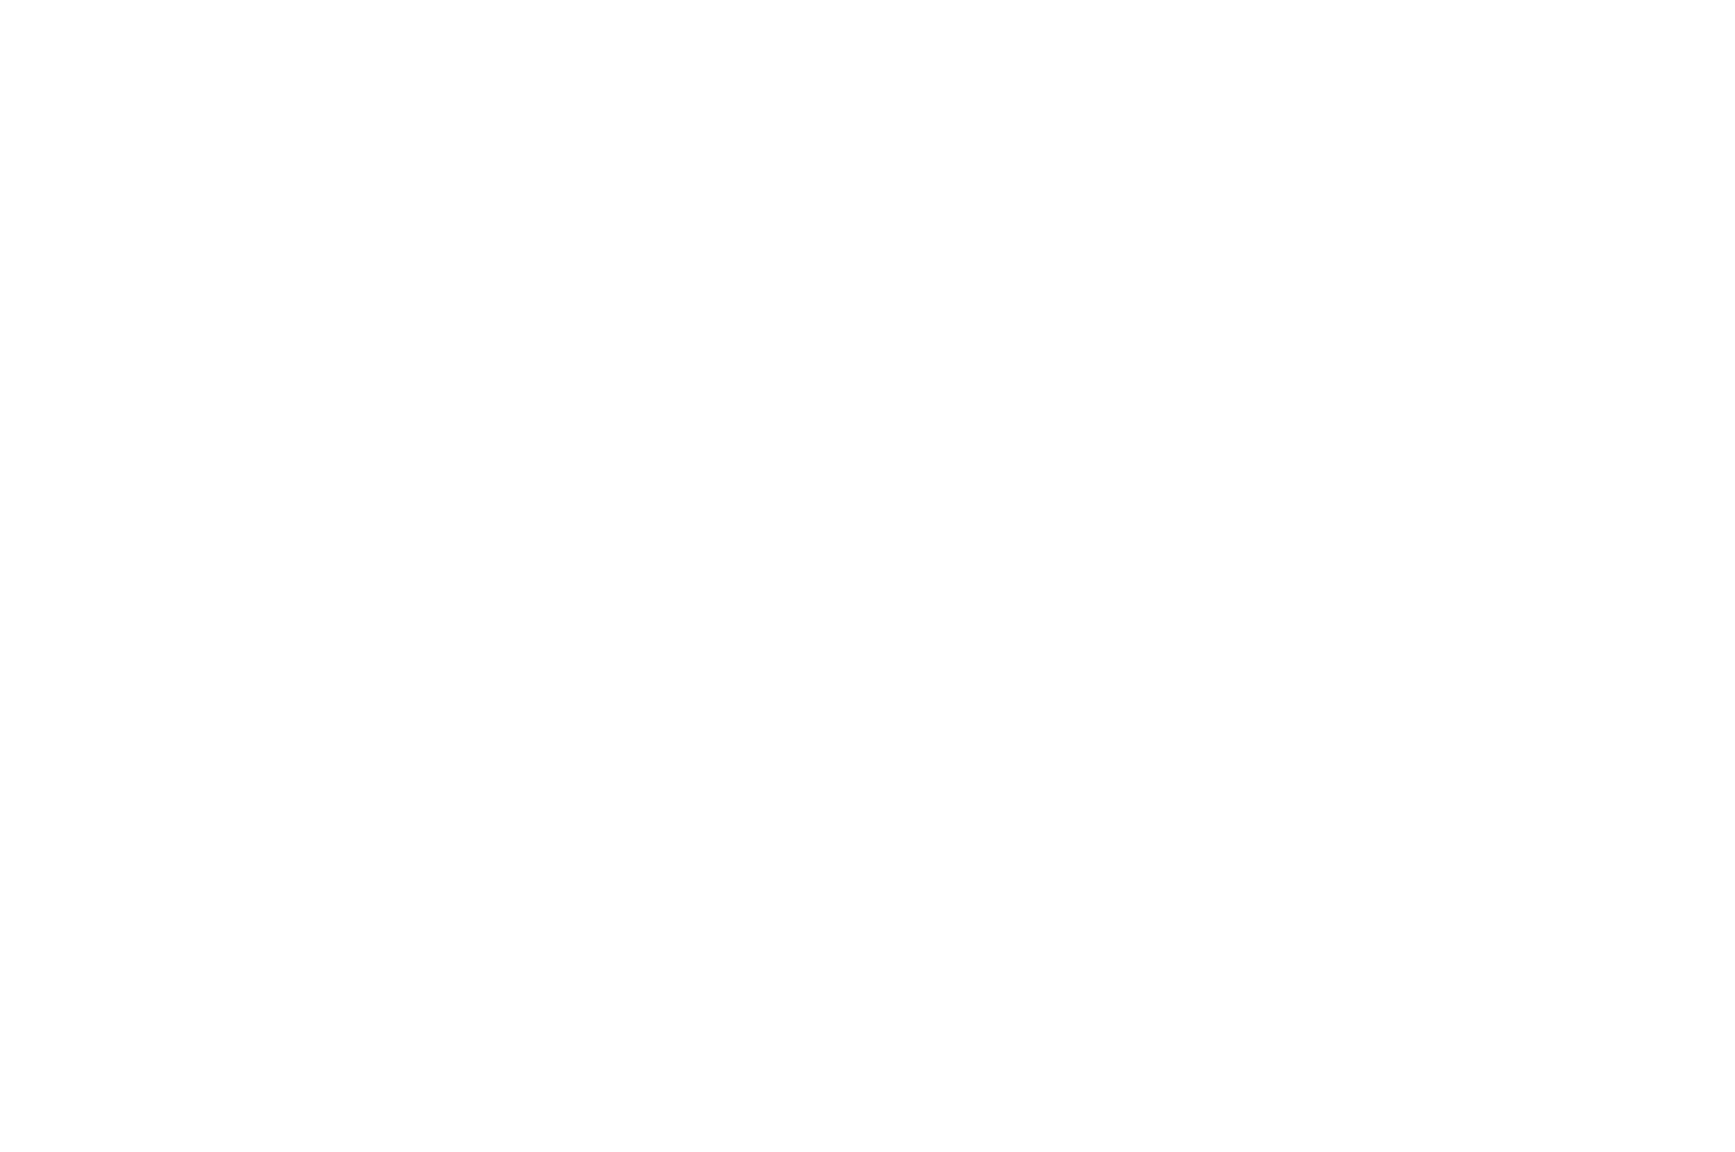 OFFICIAL SELECTION - NC Black Film Festival - 2018 (1).png